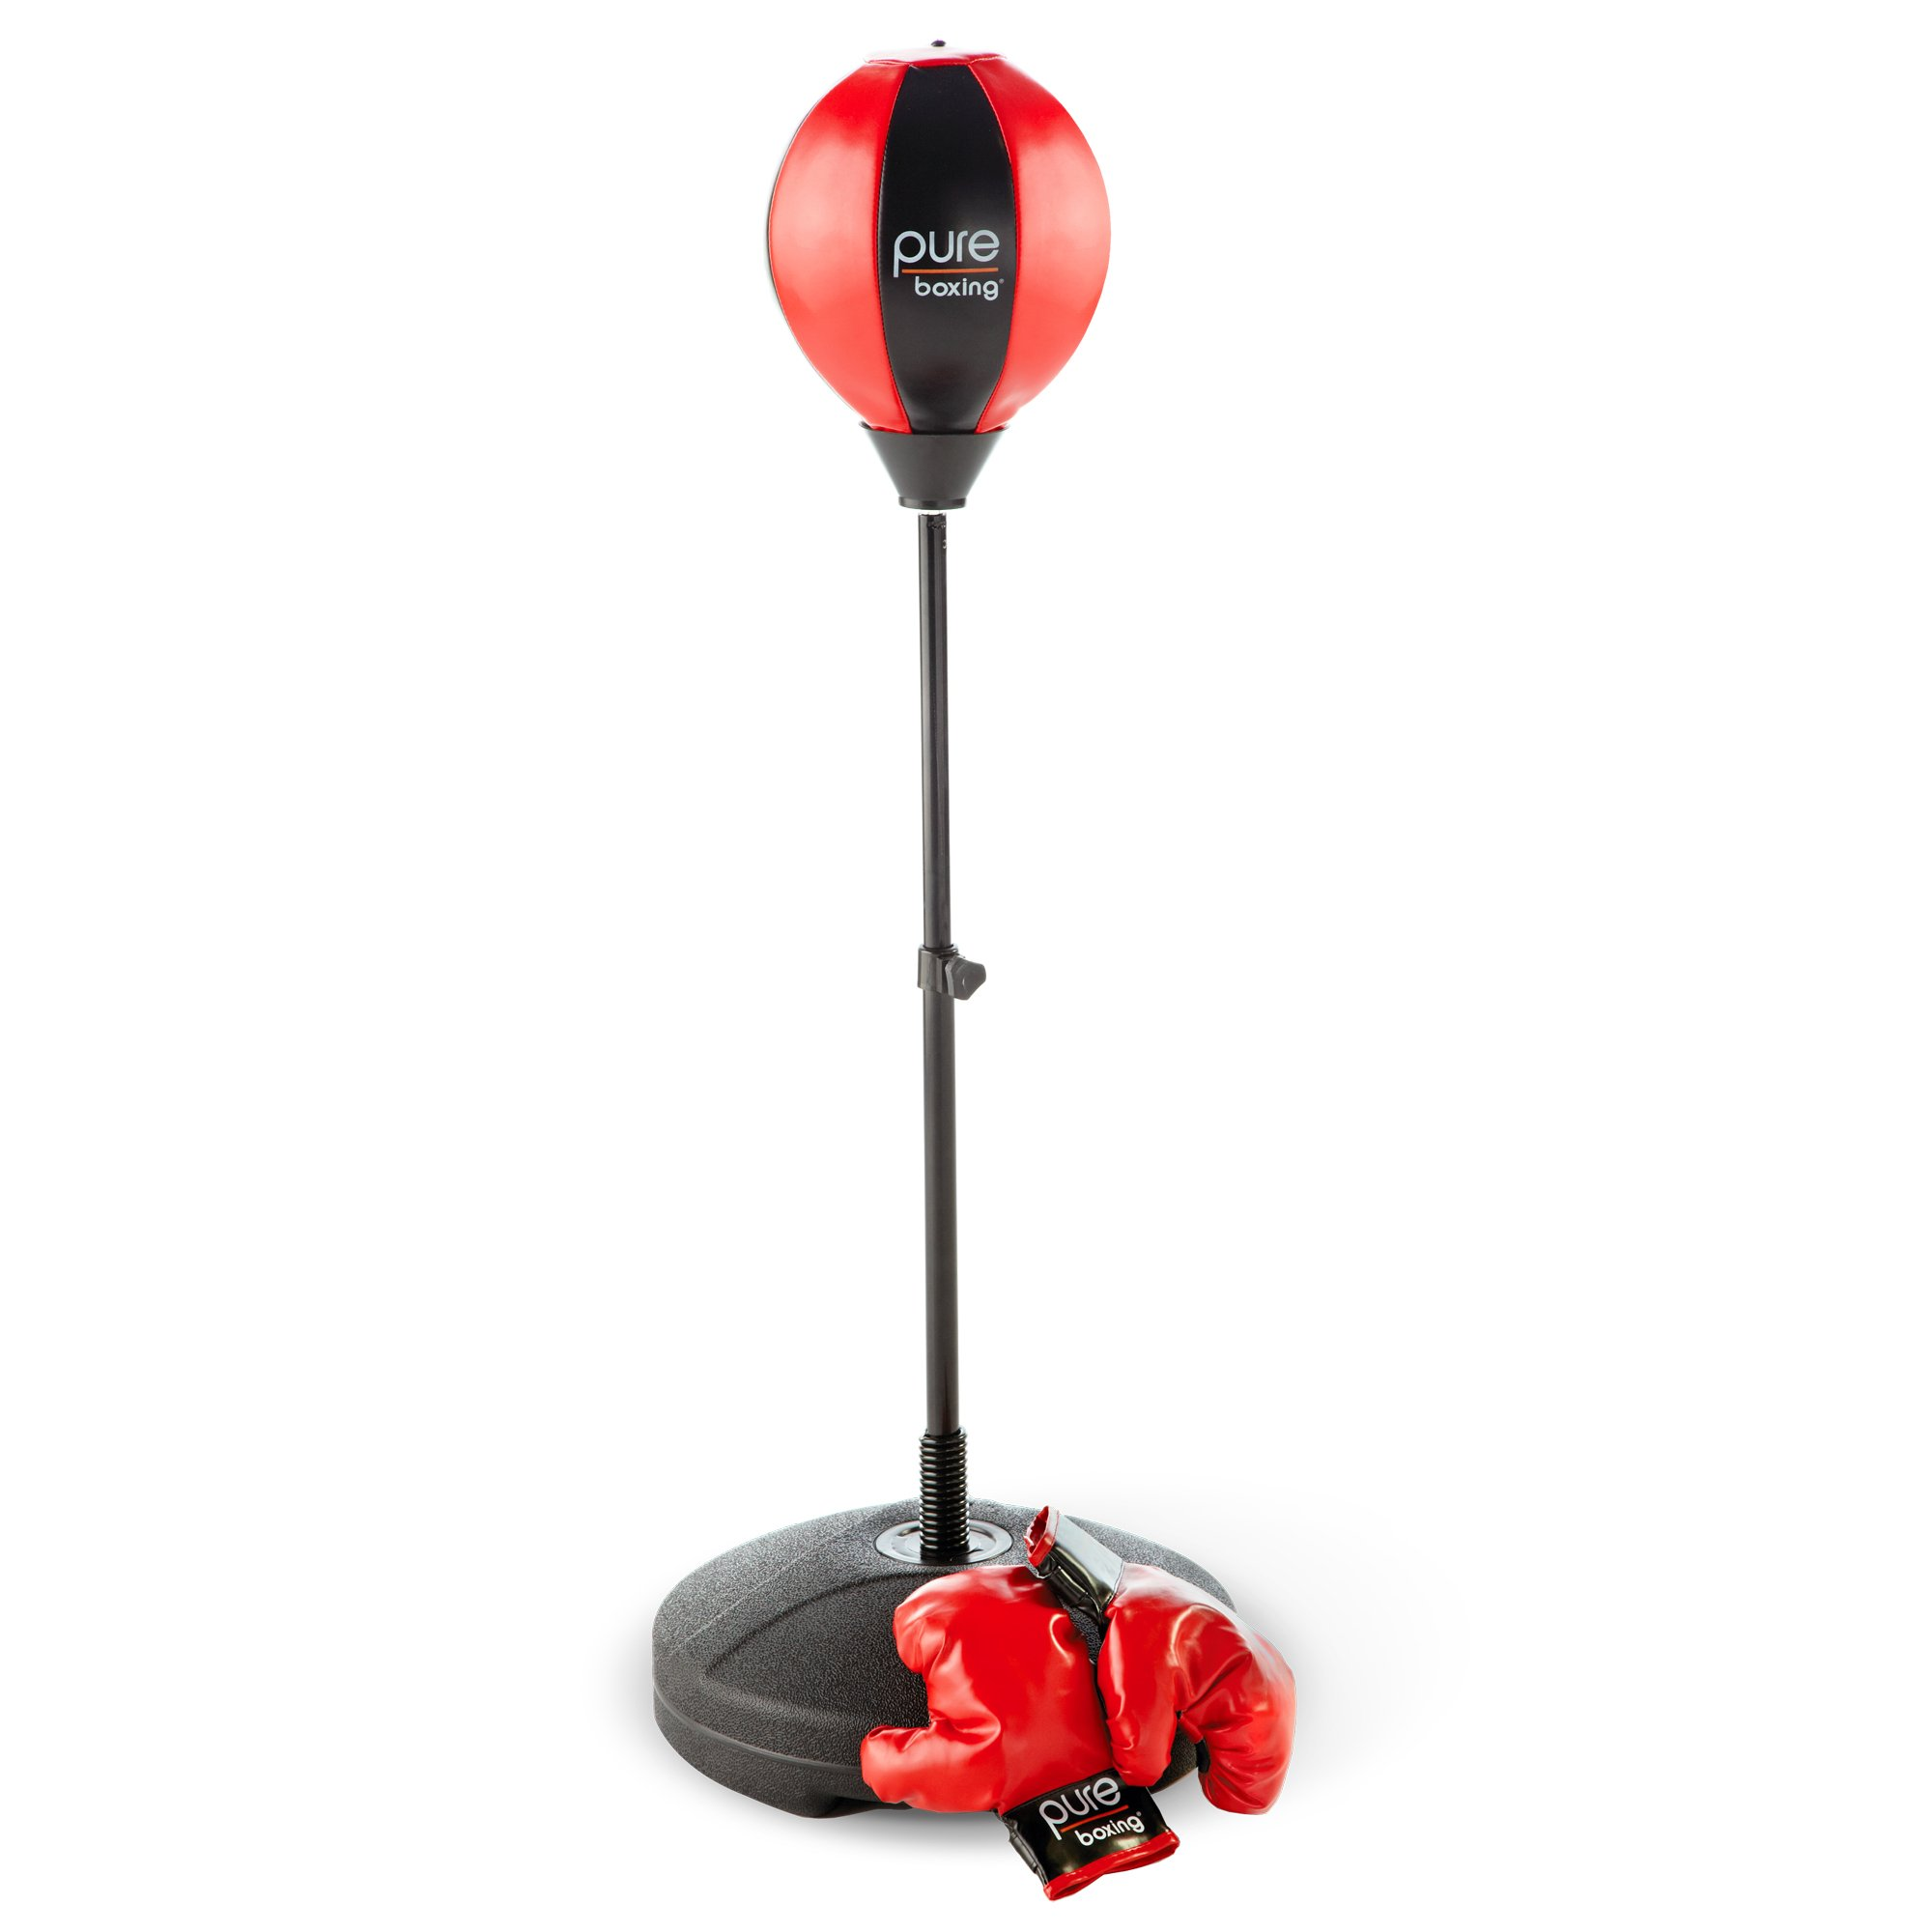 Pure Boxing Punch and Play Punching Bag for Kids - Red by Pure Boxing